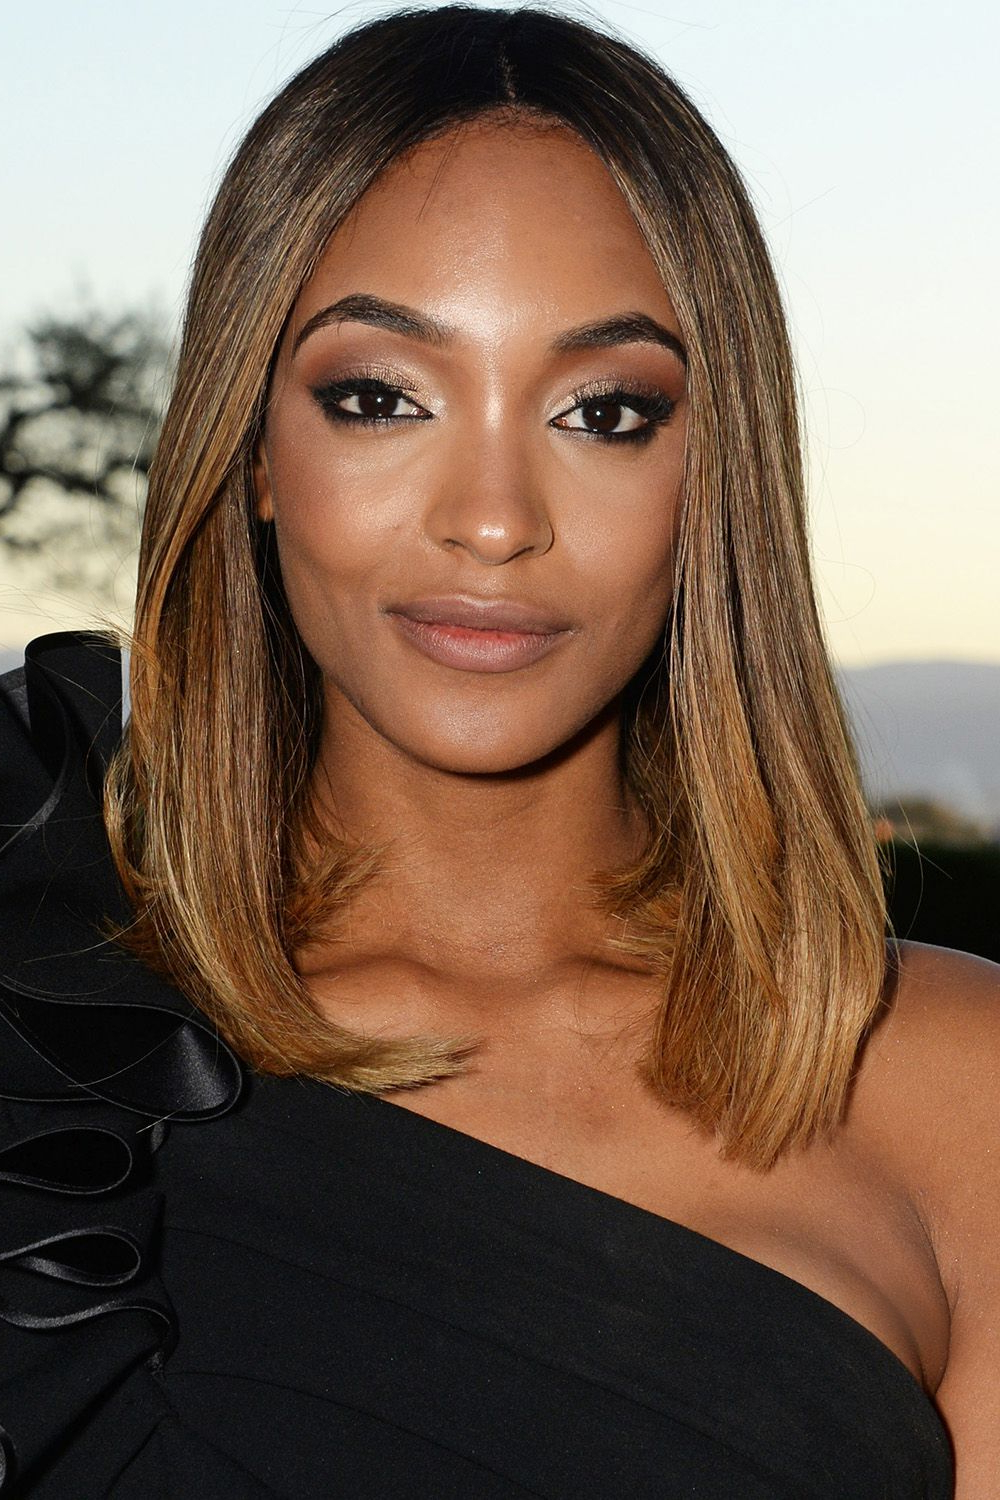 Trendy Swoopy Layers Hairstyles For Mid Length Hair For 40 Best Medium Hairstyles – Celebrities With Shoulder Length Haircuts (View 17 of 20)